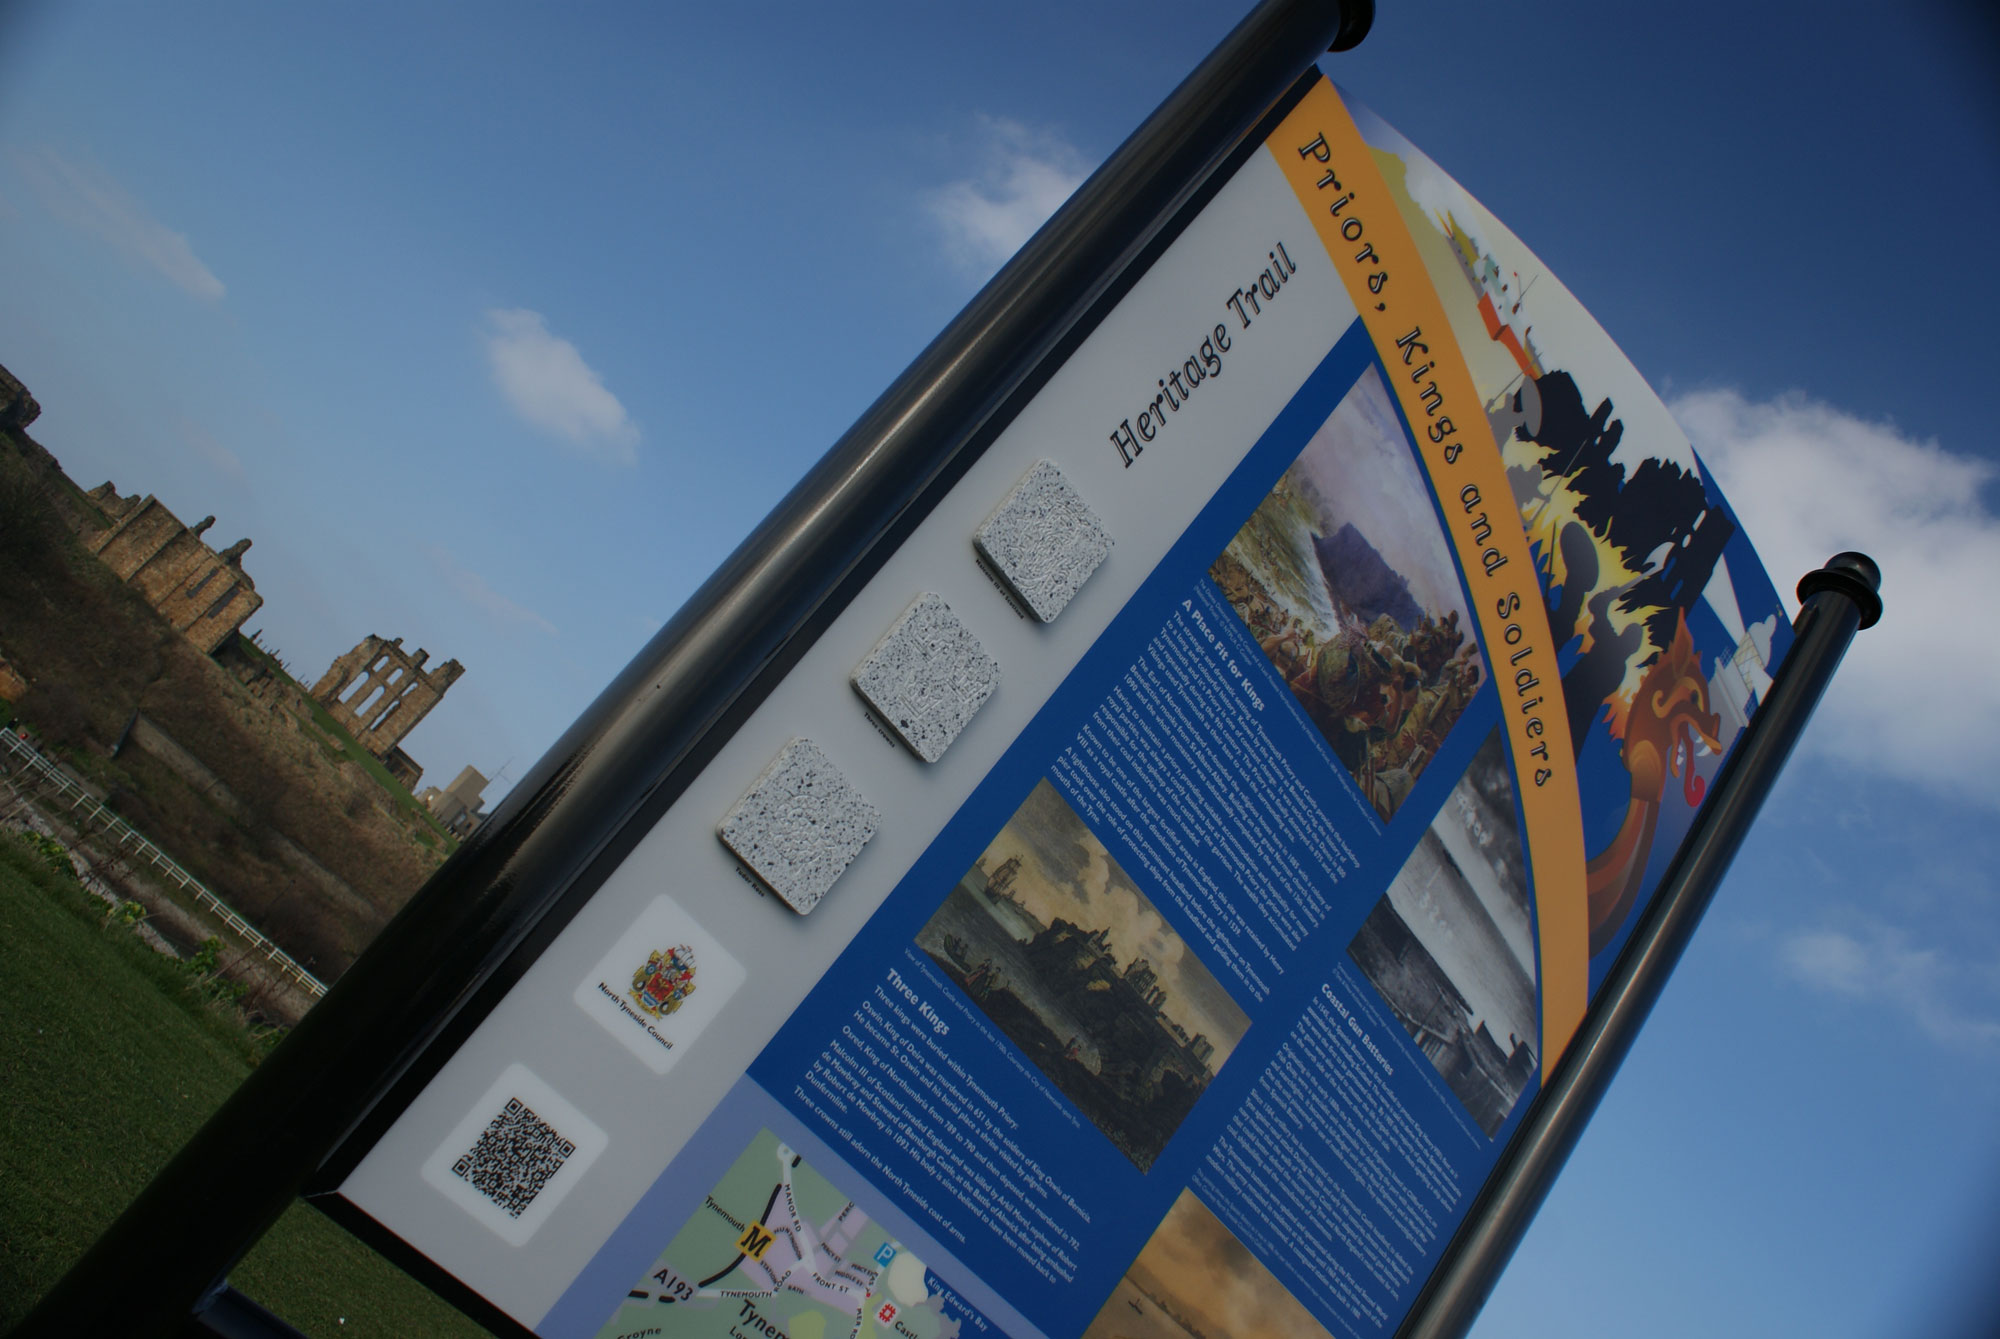 North Tyneside Coastal Heritage Trail for North Tyneside Council around Tynemouth, Cullercoats and Whitley Bay